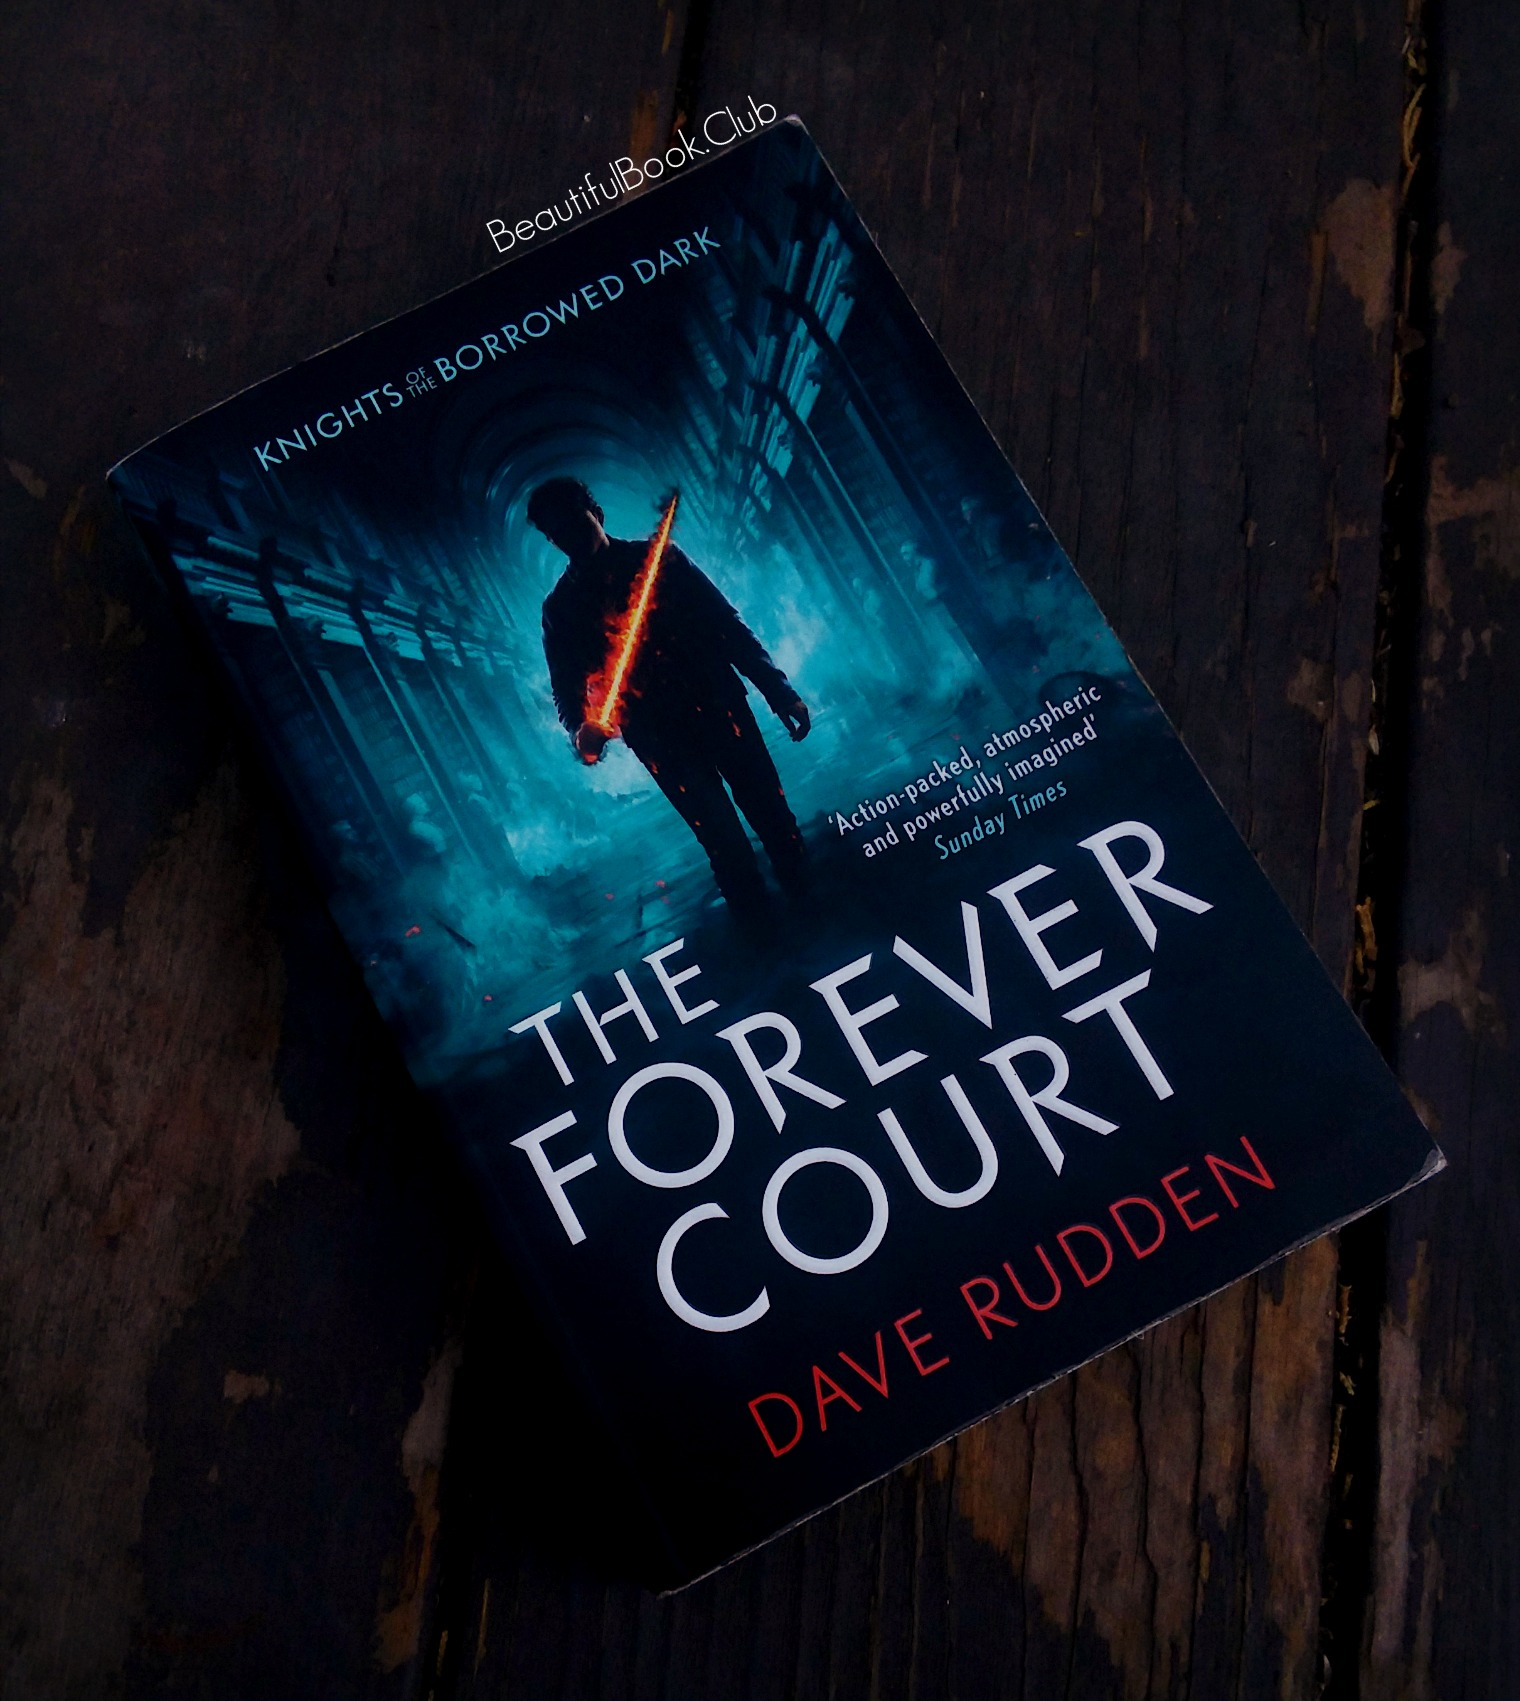 The Forever Court by Dave Rudden Knights of the Borrowed Dark trilogy book #2 front cover